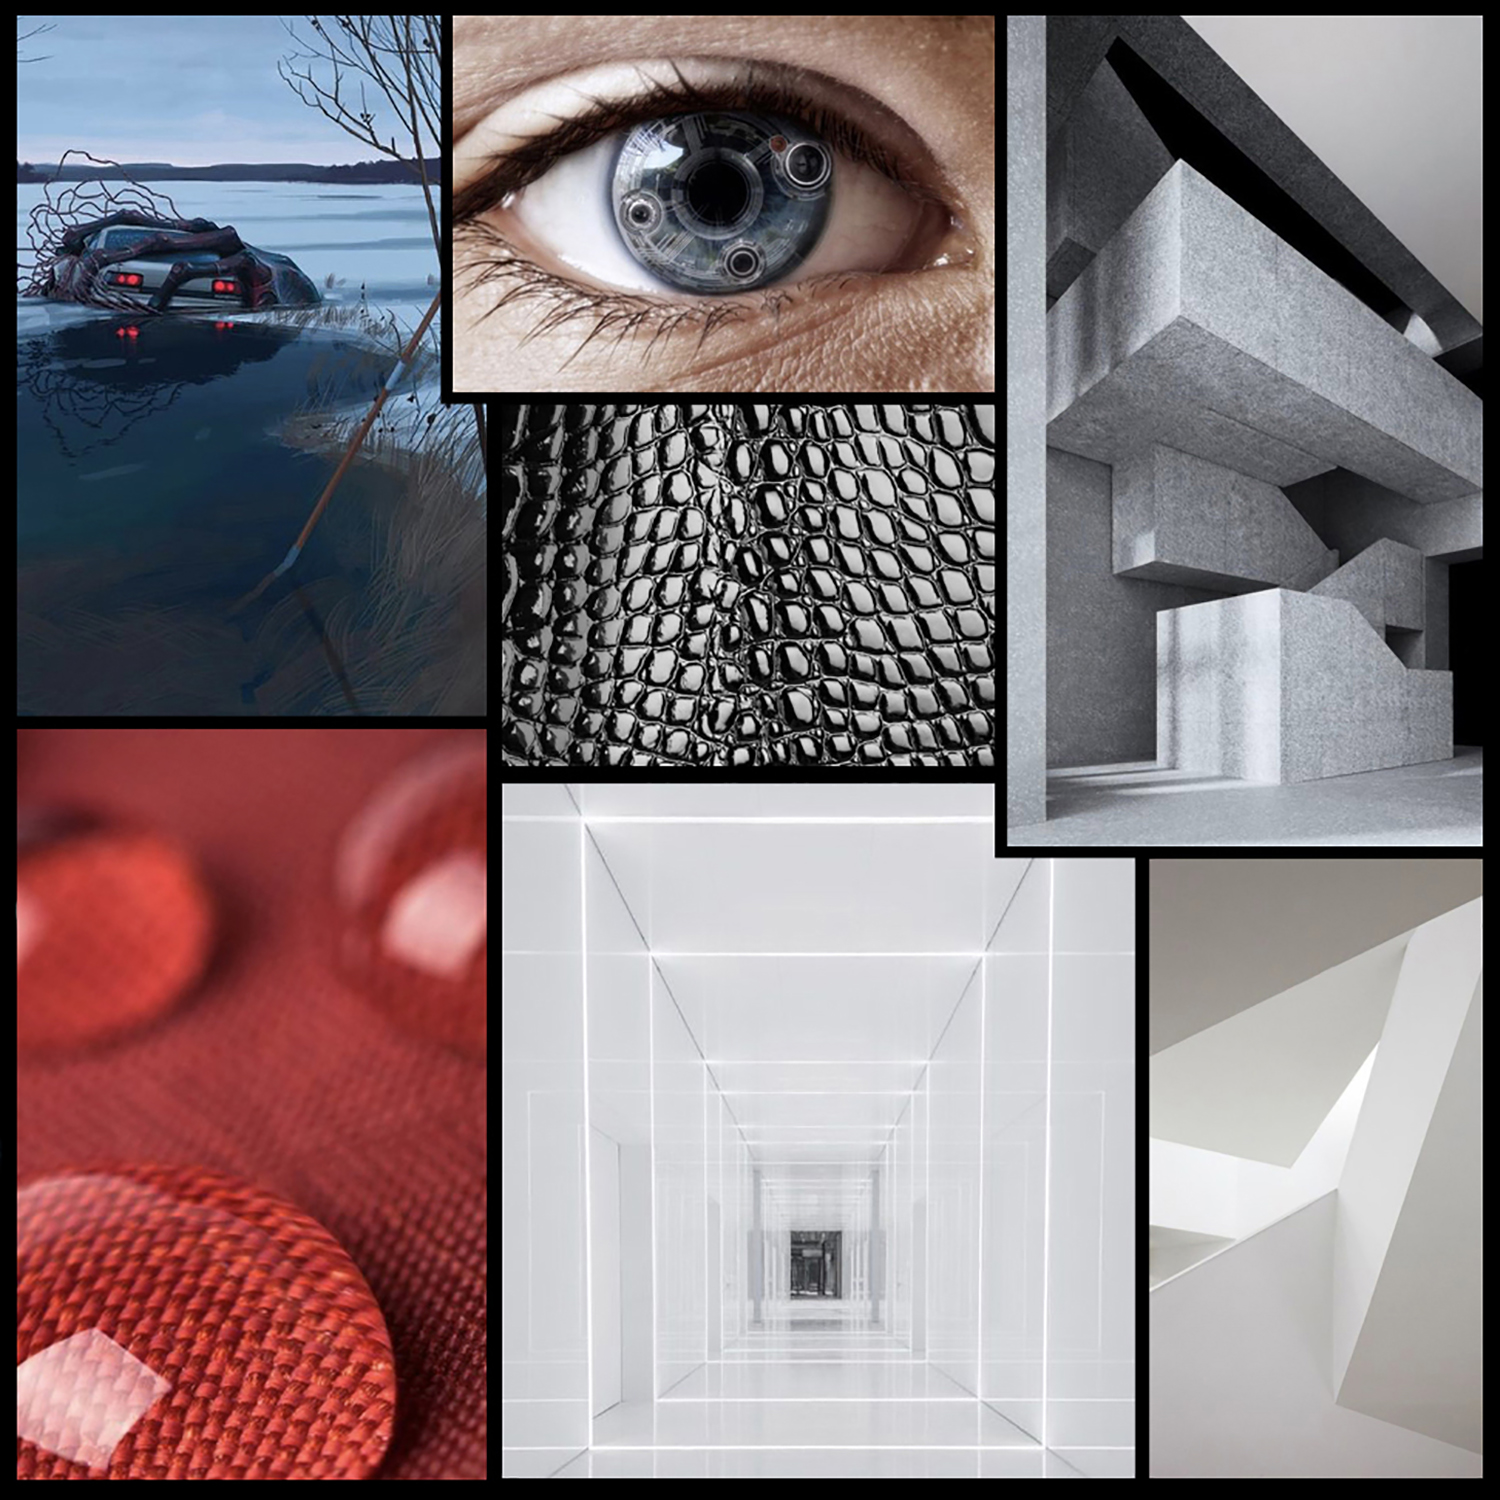 CounterStrike-AIdestruction_moodboard_Futuristic_LisaLiljenberg